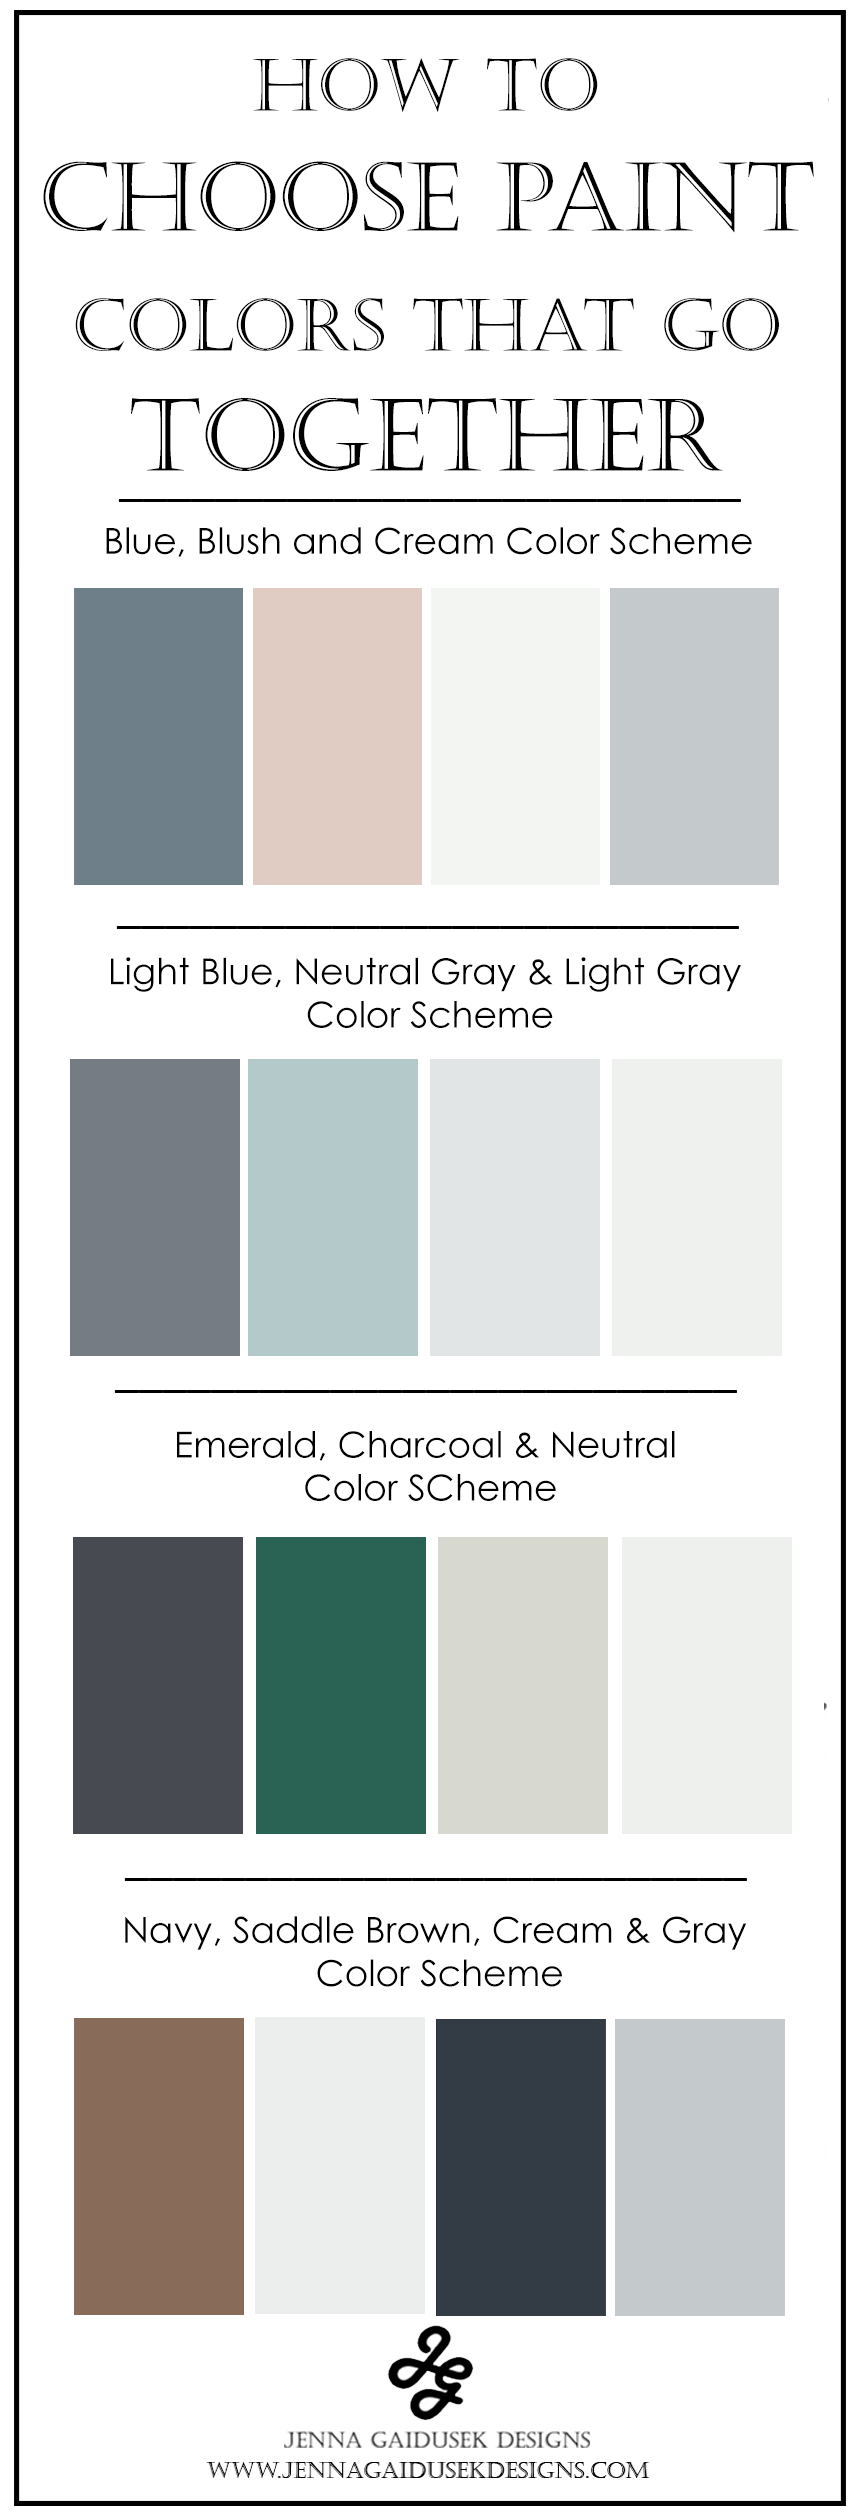 How To Choose Paint Colors That Go Together In 2020 Kolor Salonu